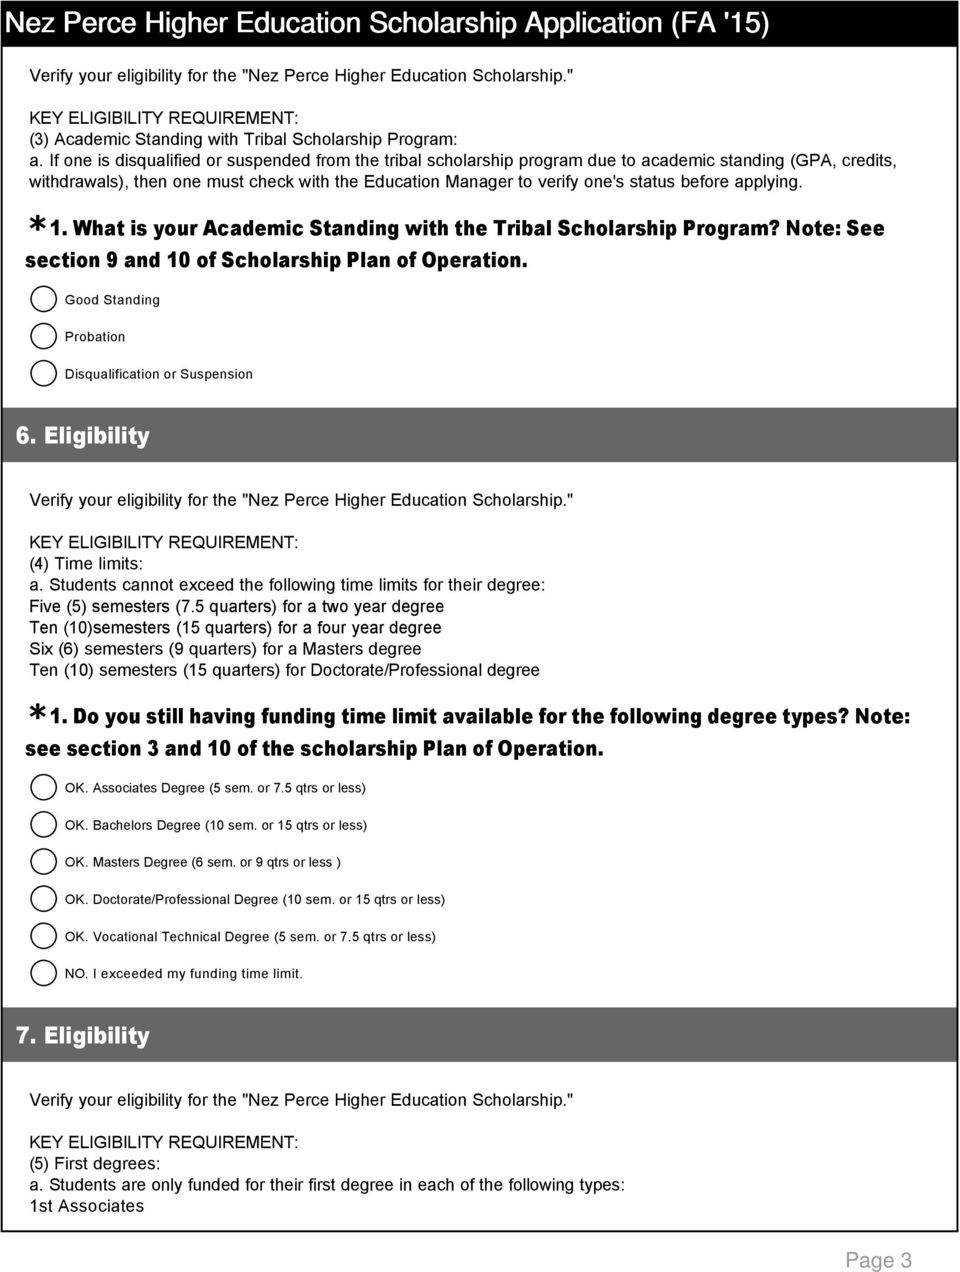 before applying. 1. What is your Academic Standing with the Tribal Scholarship Program? te: See section 9 and 10 of Scholarship Plan of Operation.